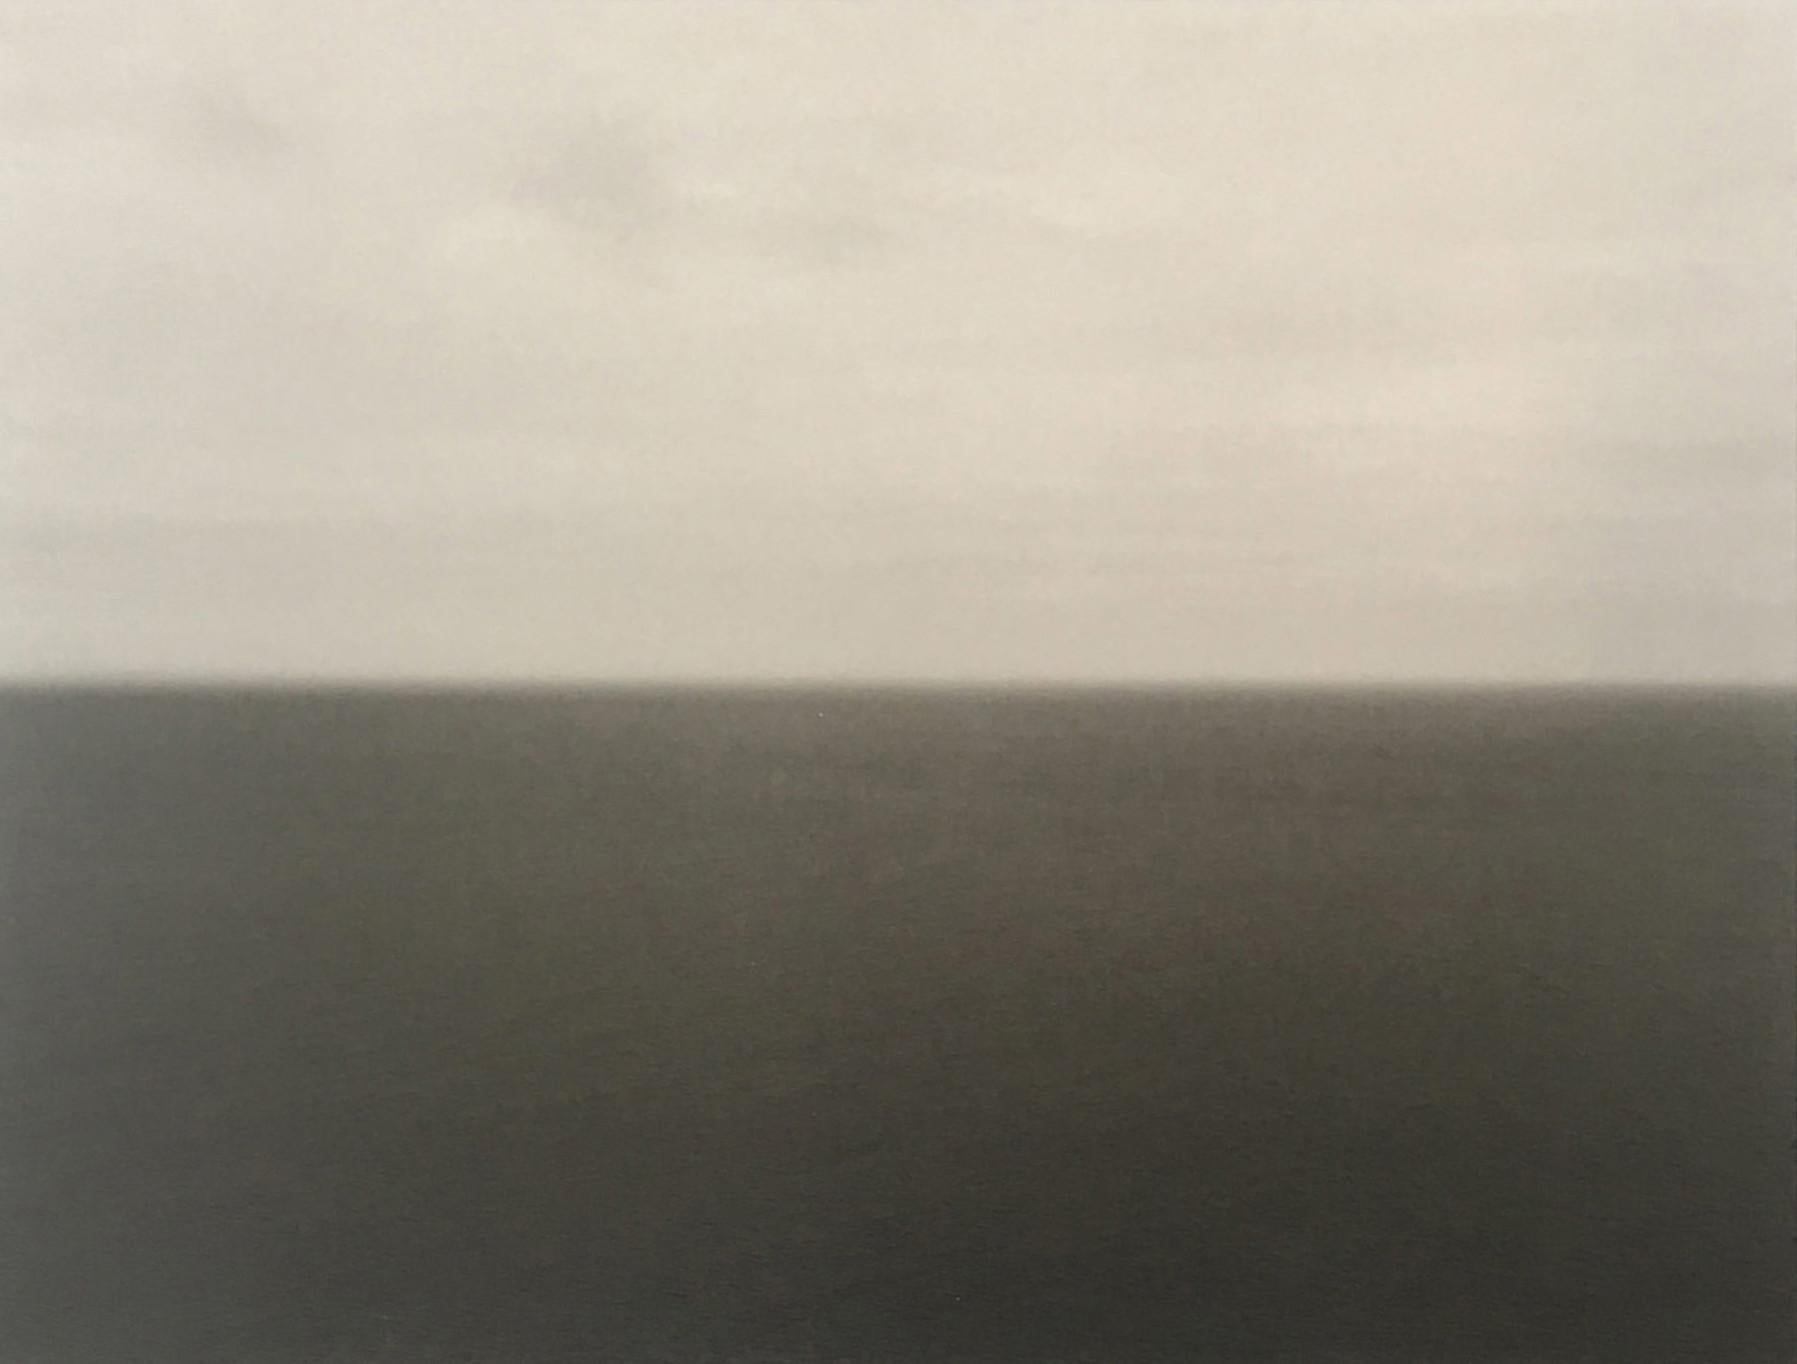 Time Exposed: #364 Bay of Biscay, Bakio 1991